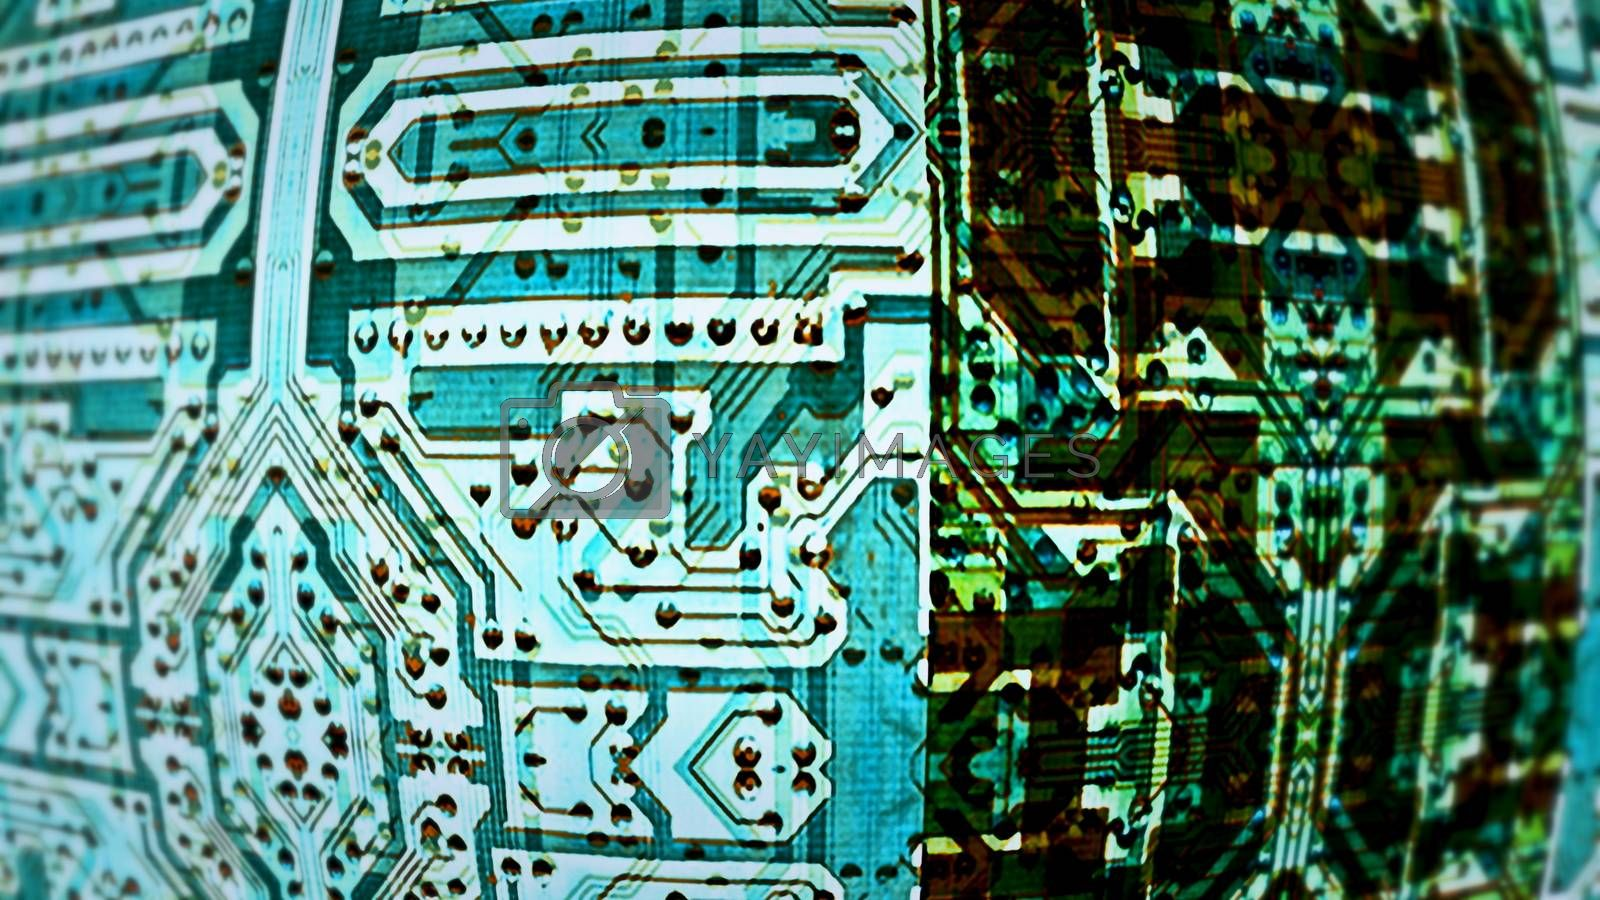 Circuit Boards 0233. Intersecting stylized blue circuit boards.